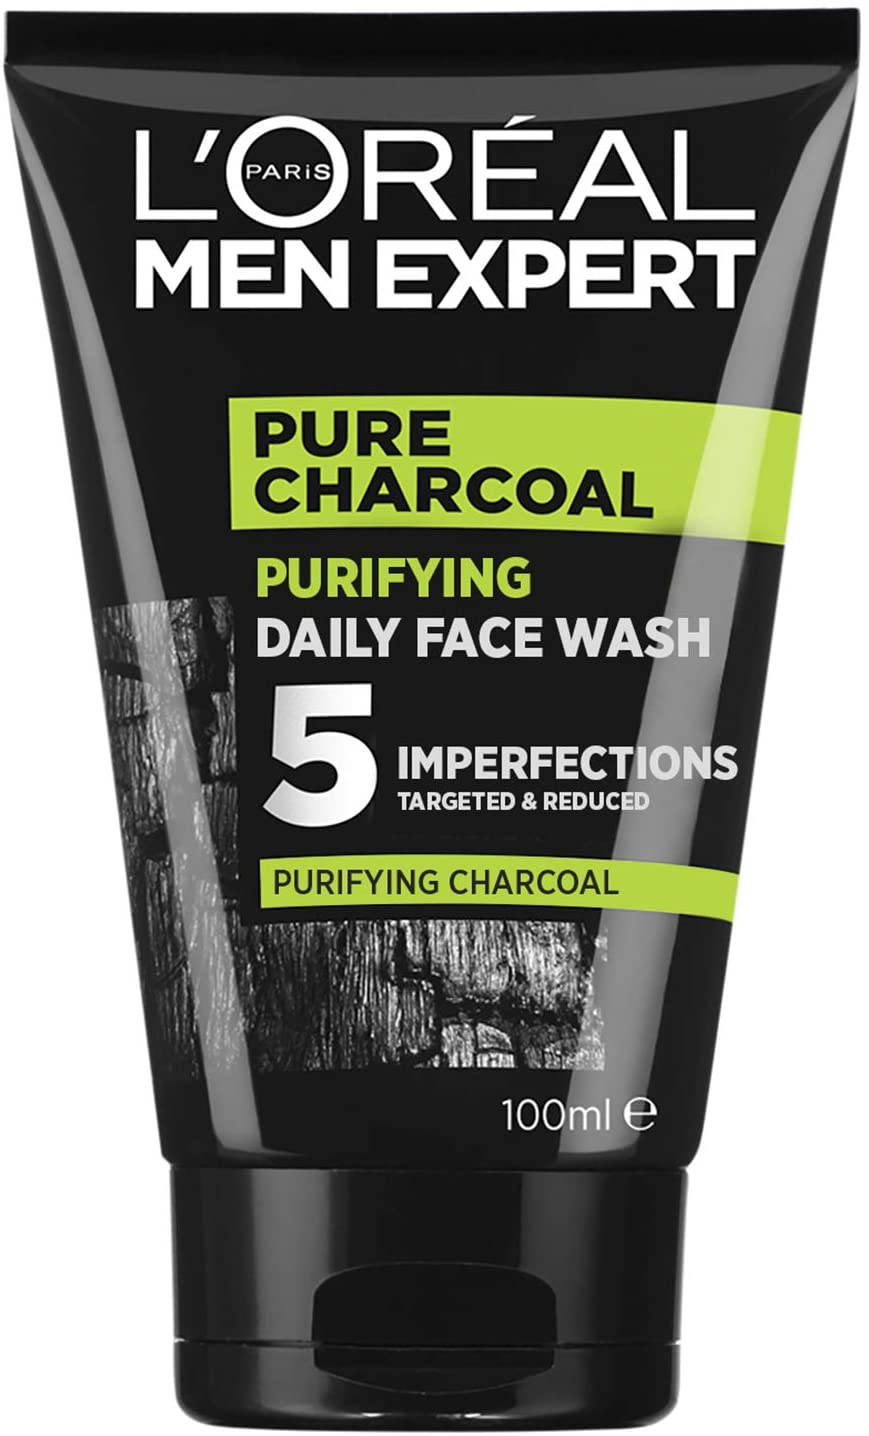 L'Oréal Paris Men Expert Pure Power Charcoal Face Wash For Men 100ml $7.5 WAS $9.95 @ Amazon